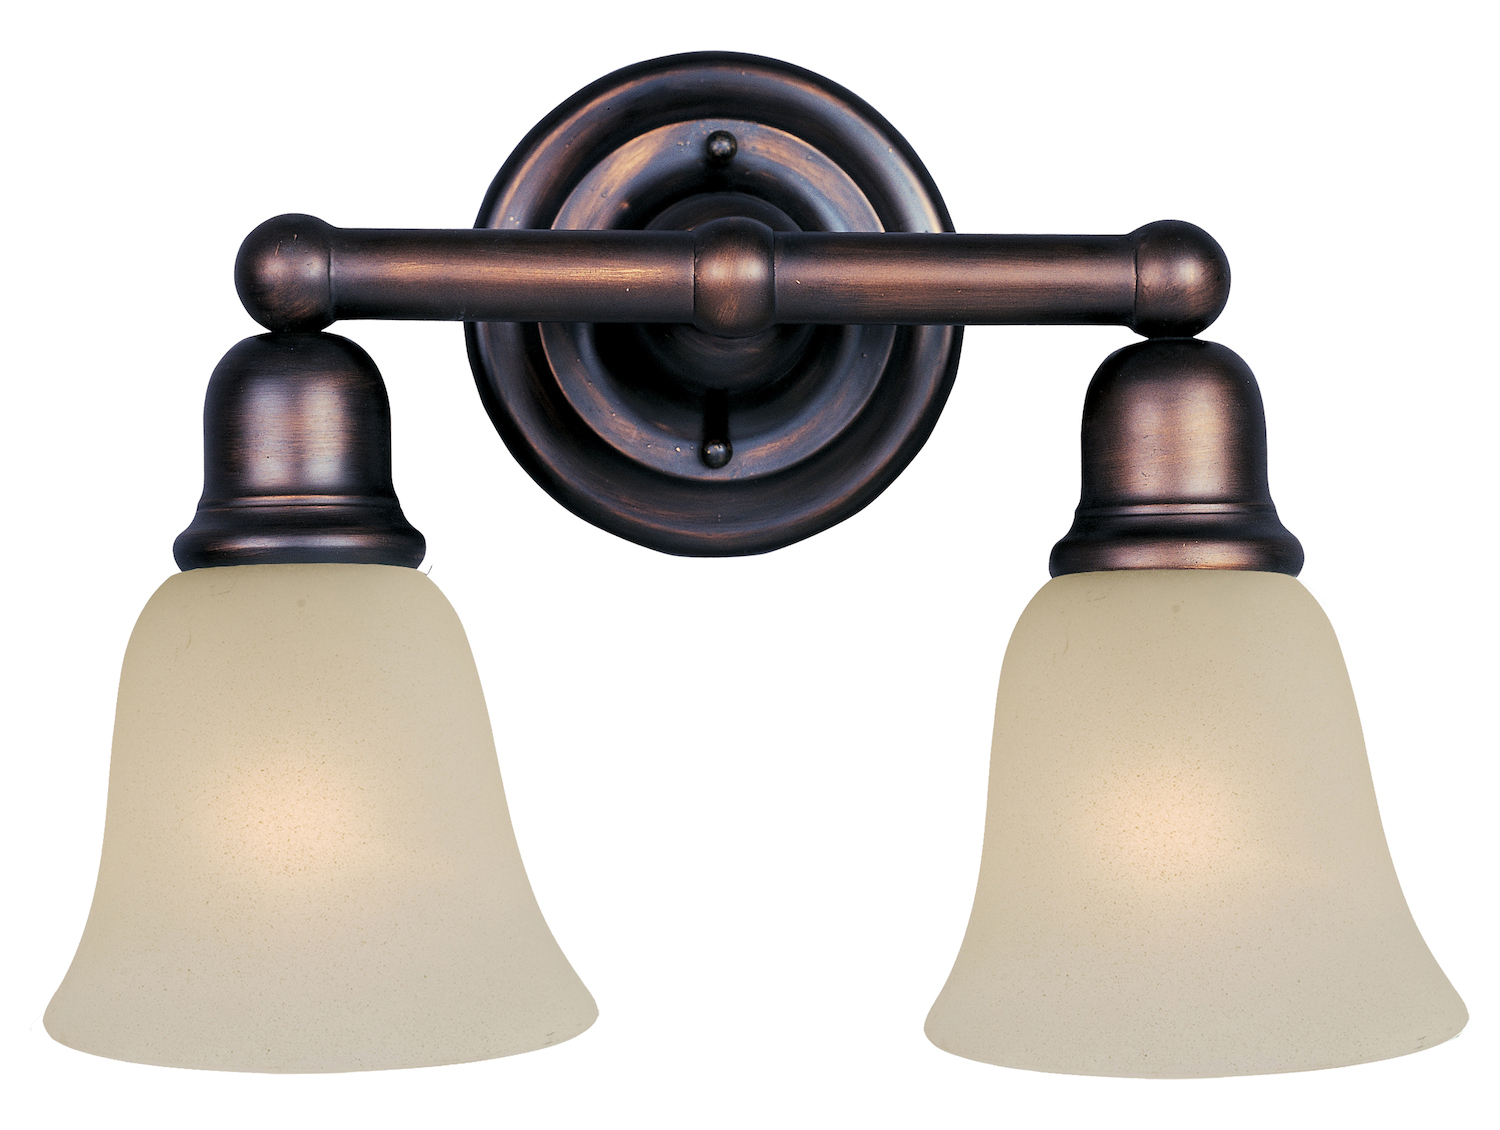 Bronze Vanity Lights With Clear Glass : Maxim Two Light Oil Rubbed Bronze Soft Vanilla Glass Vanity Oil Rubbed Bronze 11087SVOI From Bel ...